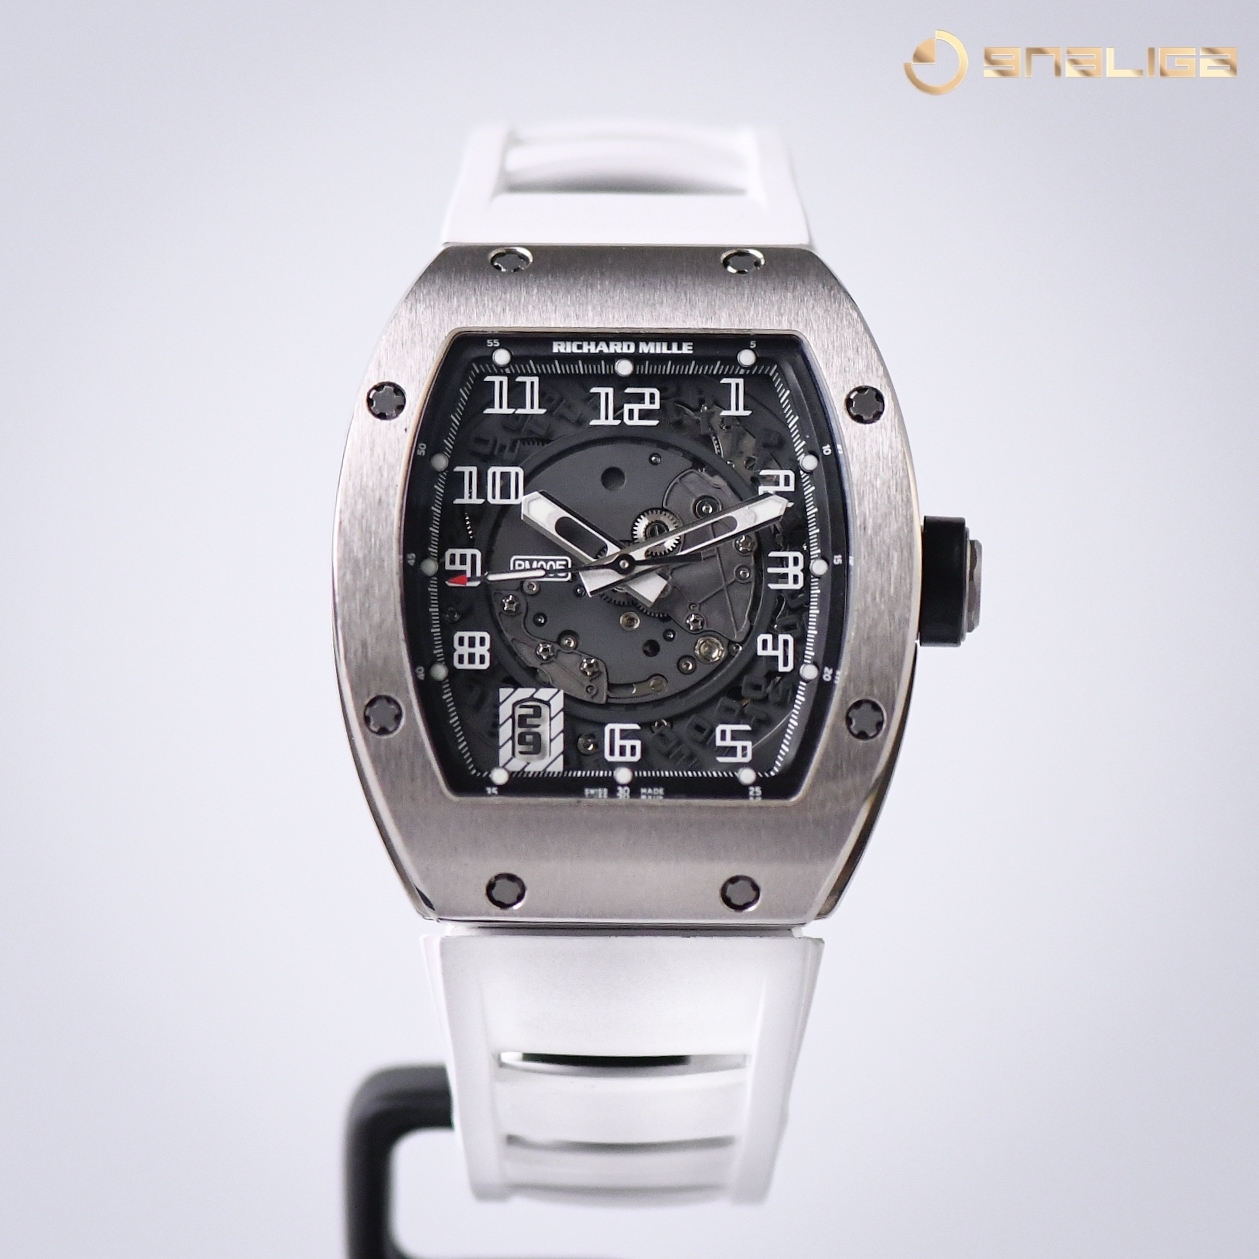 Richard Mille RM 005 White Gold Automatic